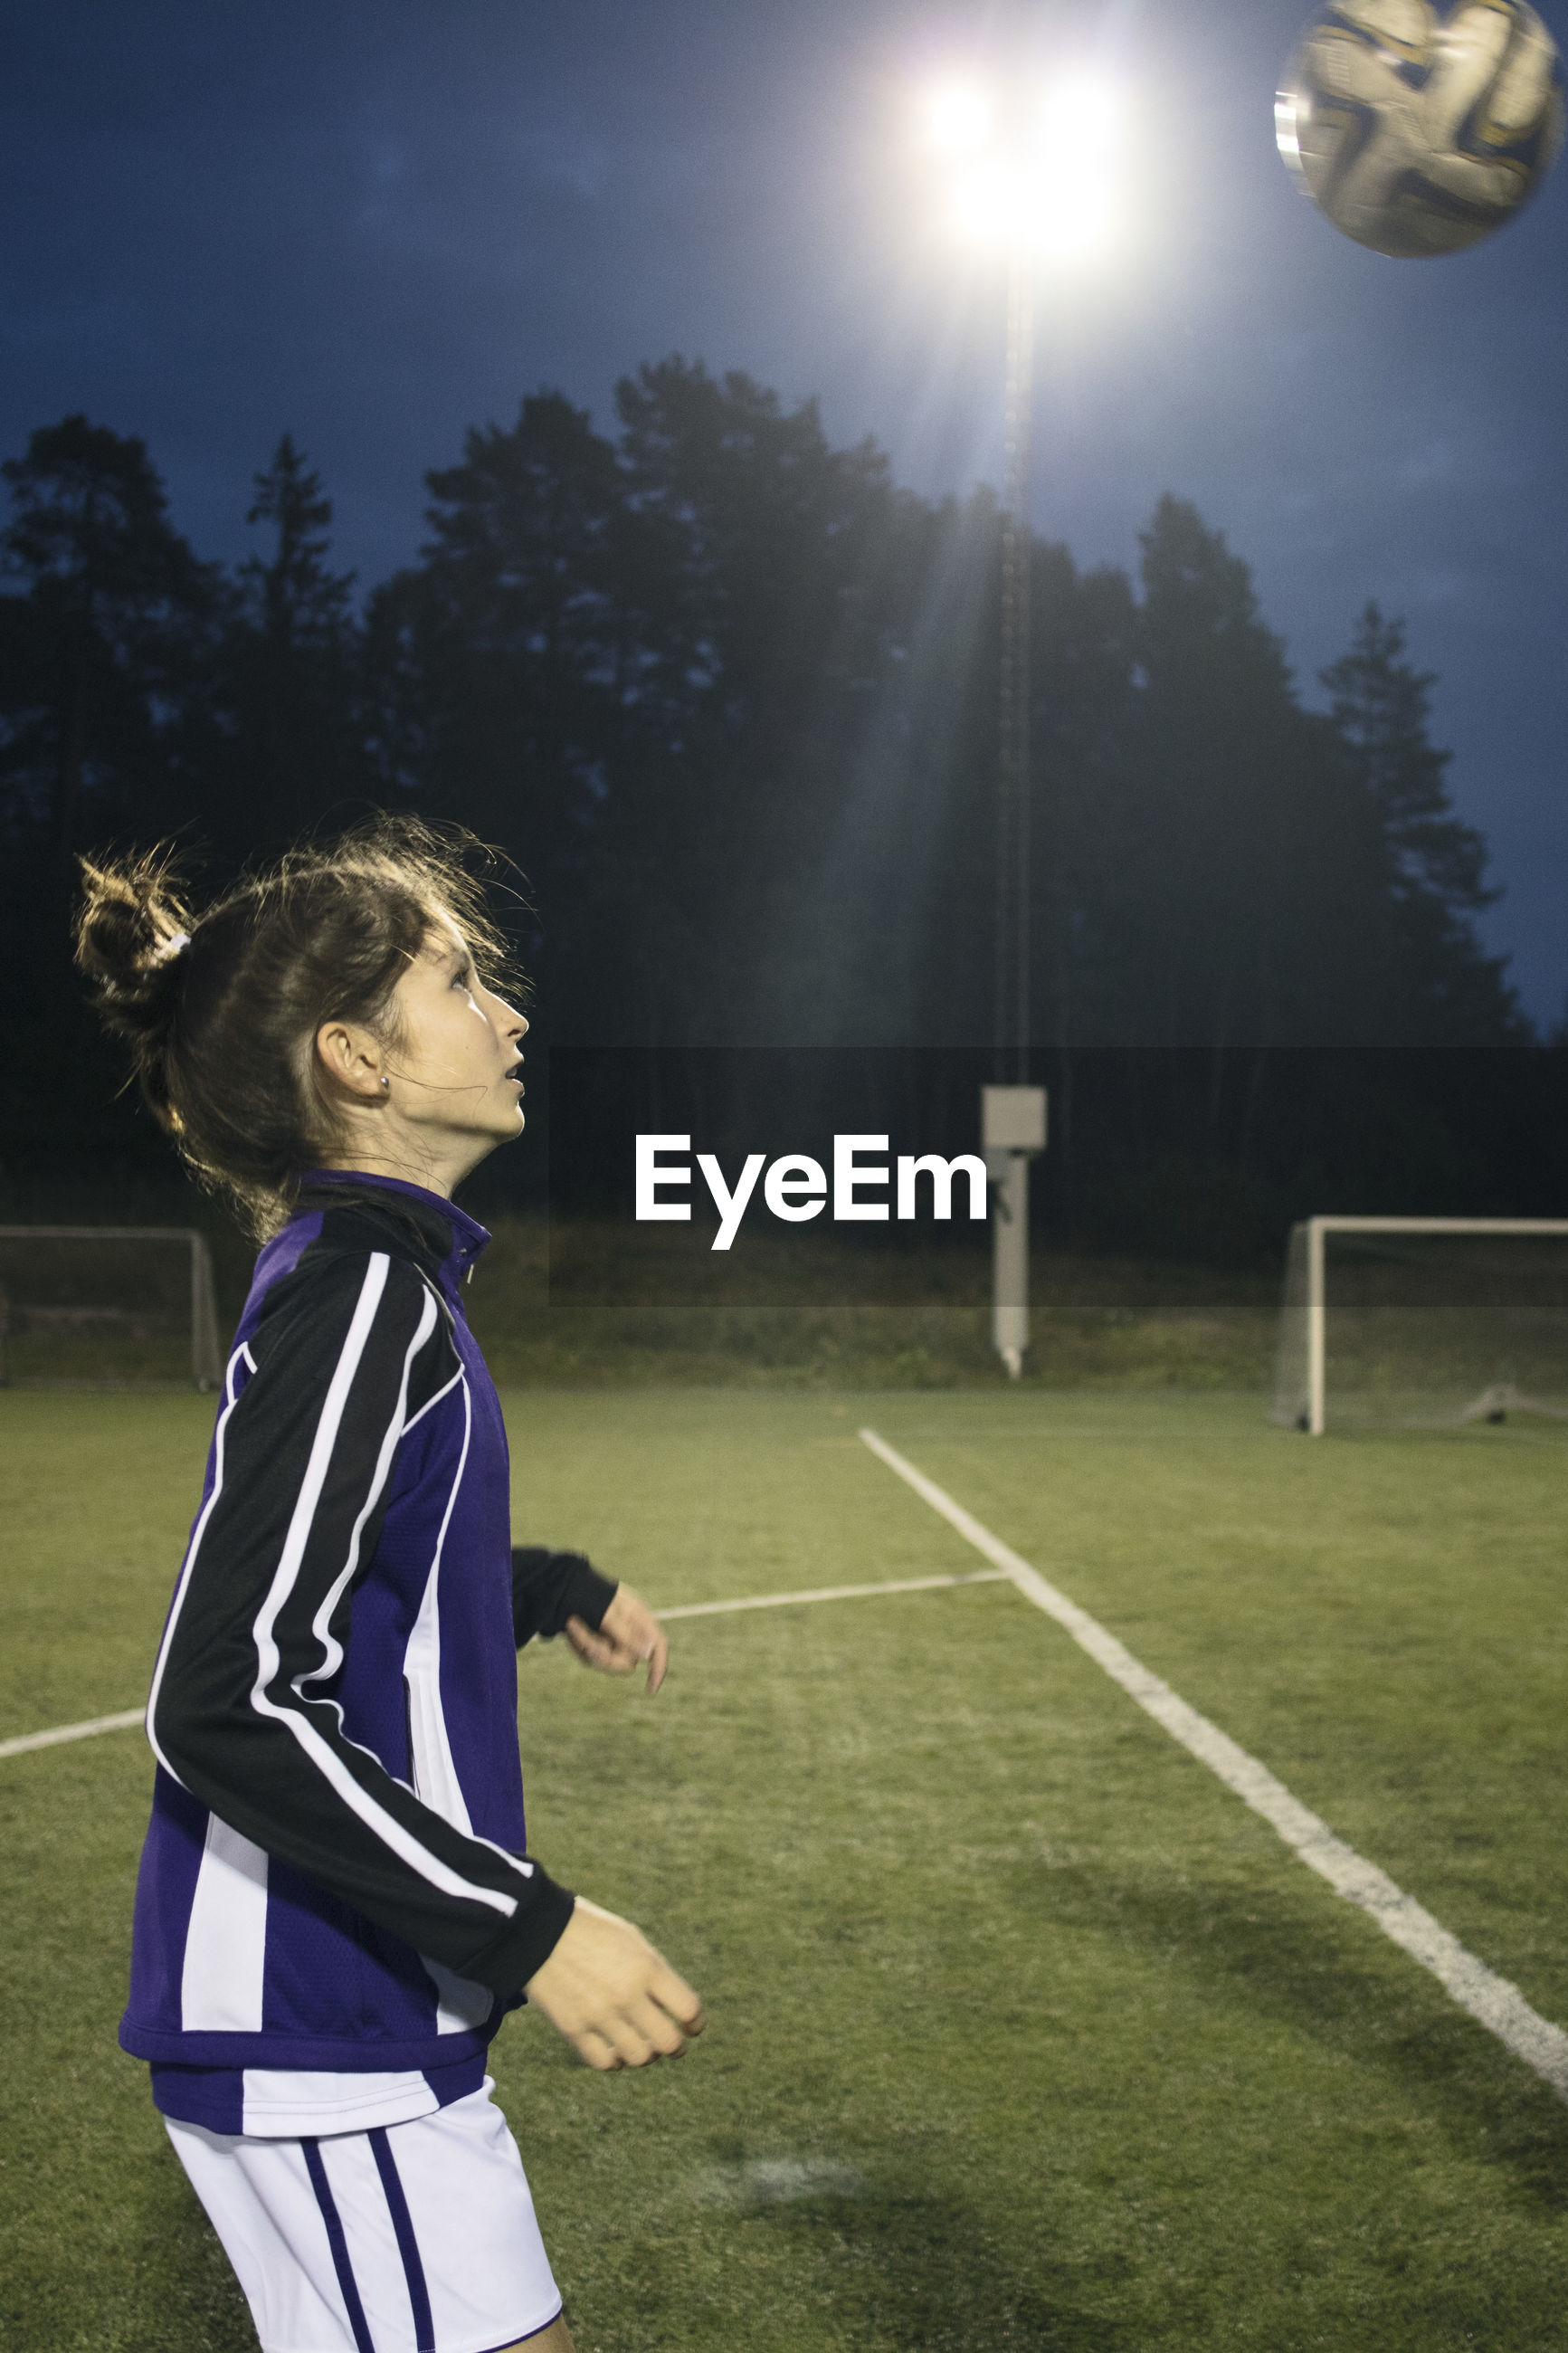 SIDE VIEW OF GIRL PLAYING SOCCER BALL